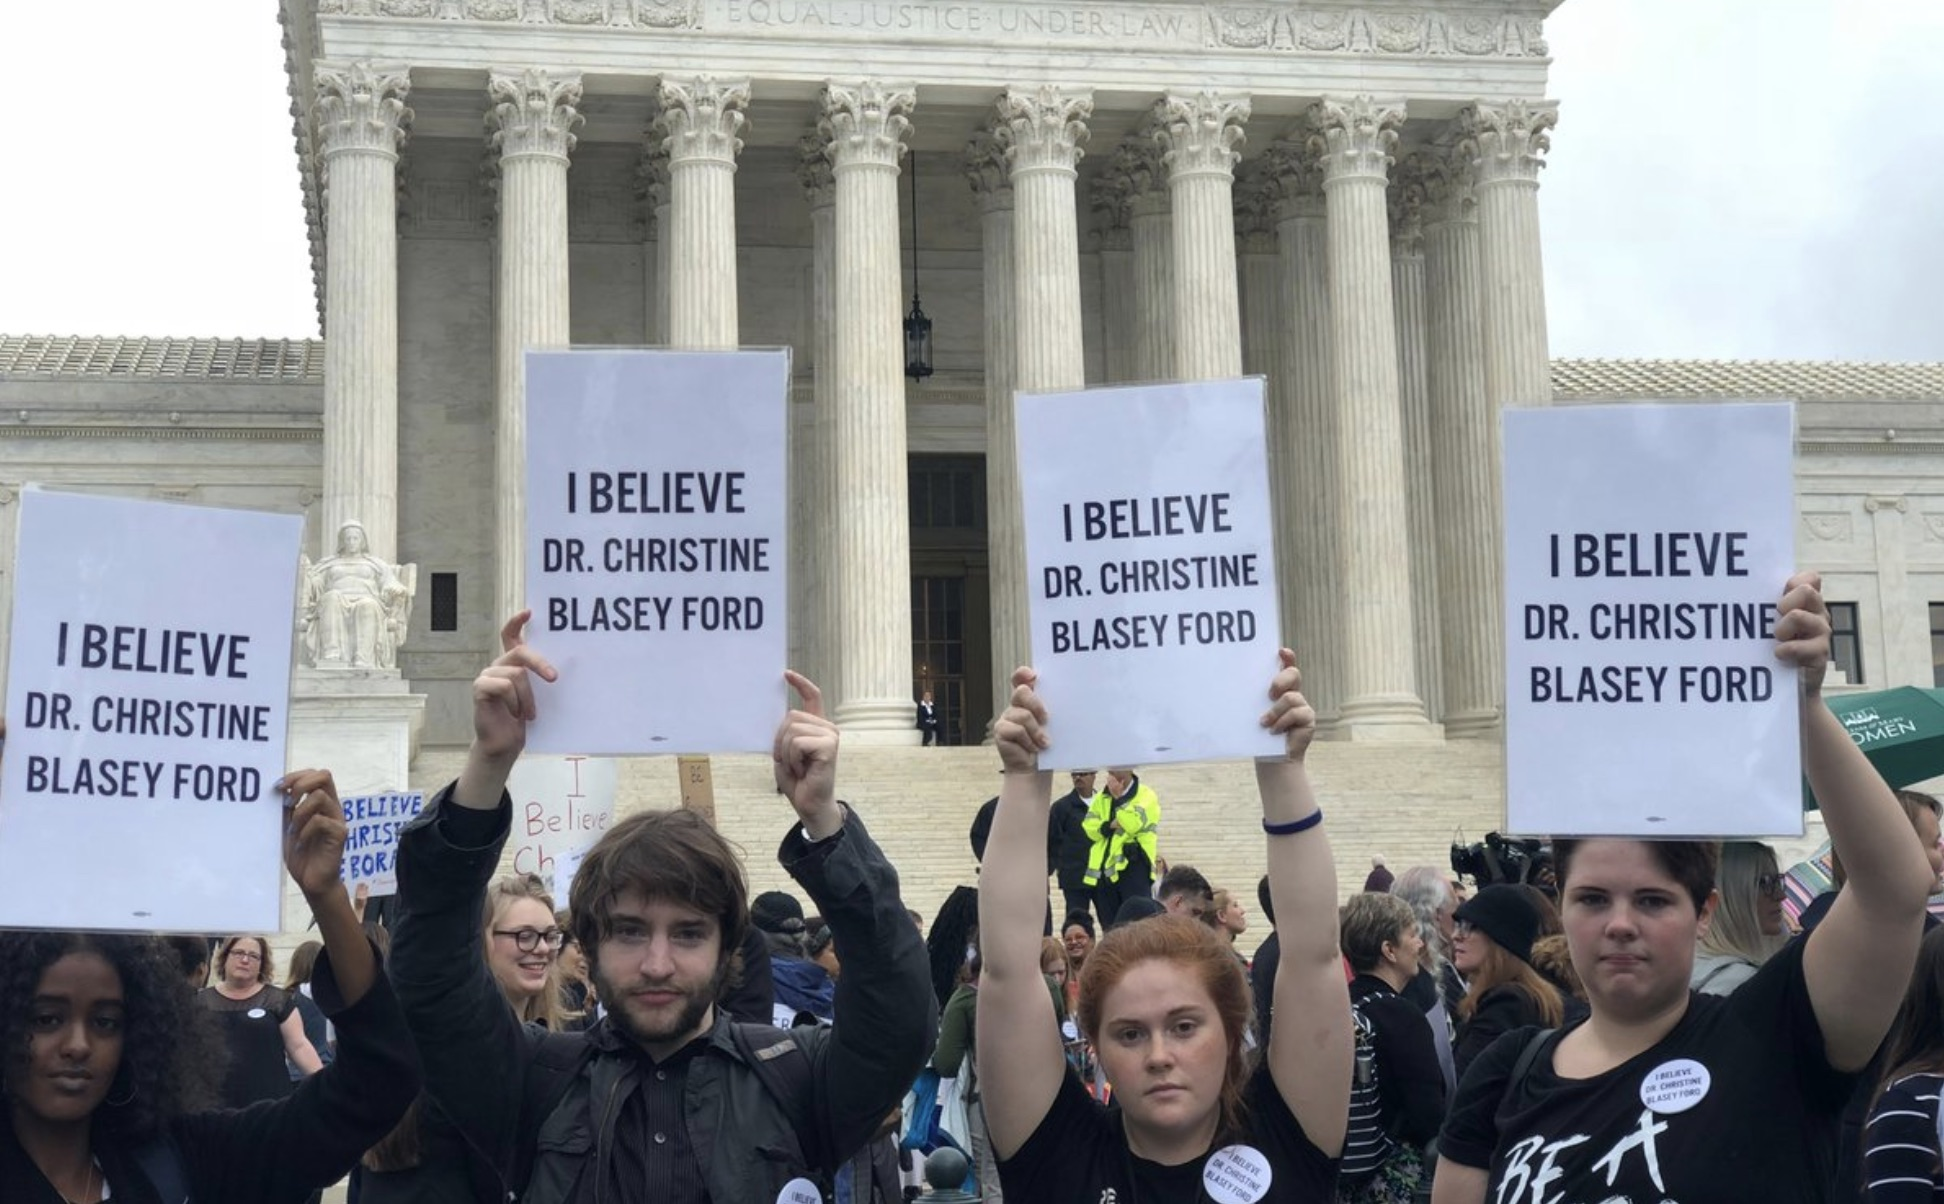 The most powerful tweets and images from today's national walkout to protest Brett Kavanaugh